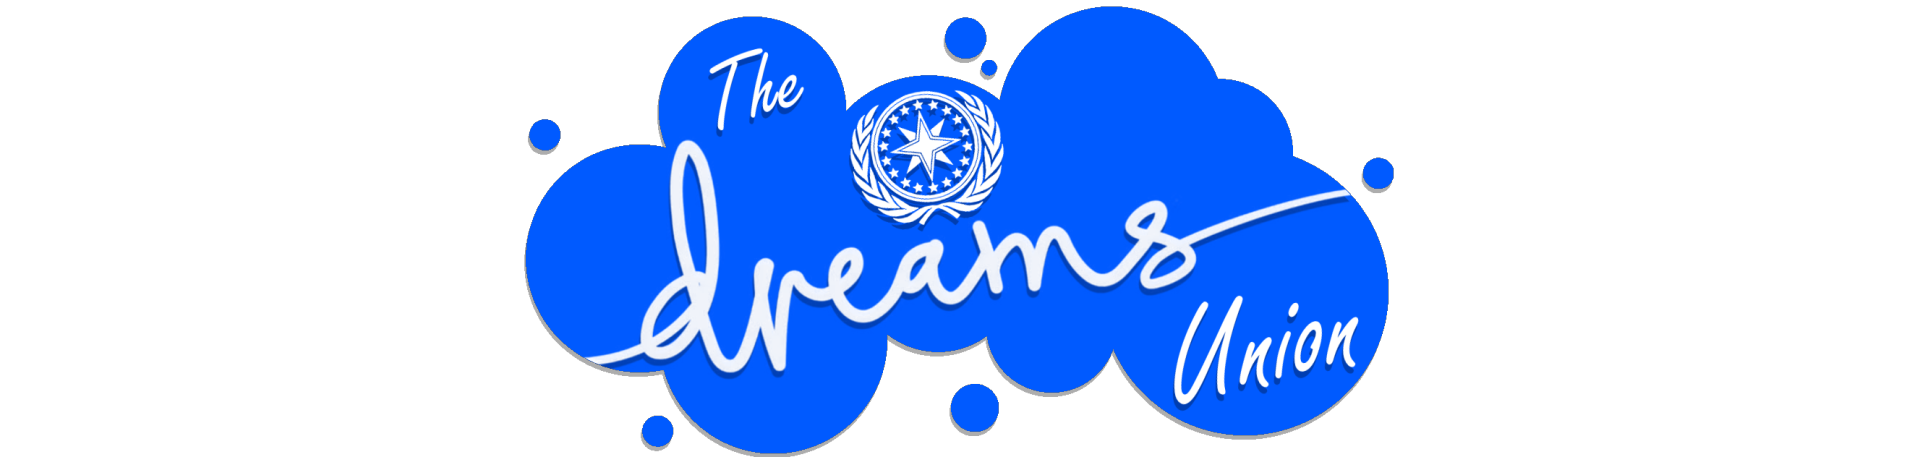 The_Dreams_Union.png